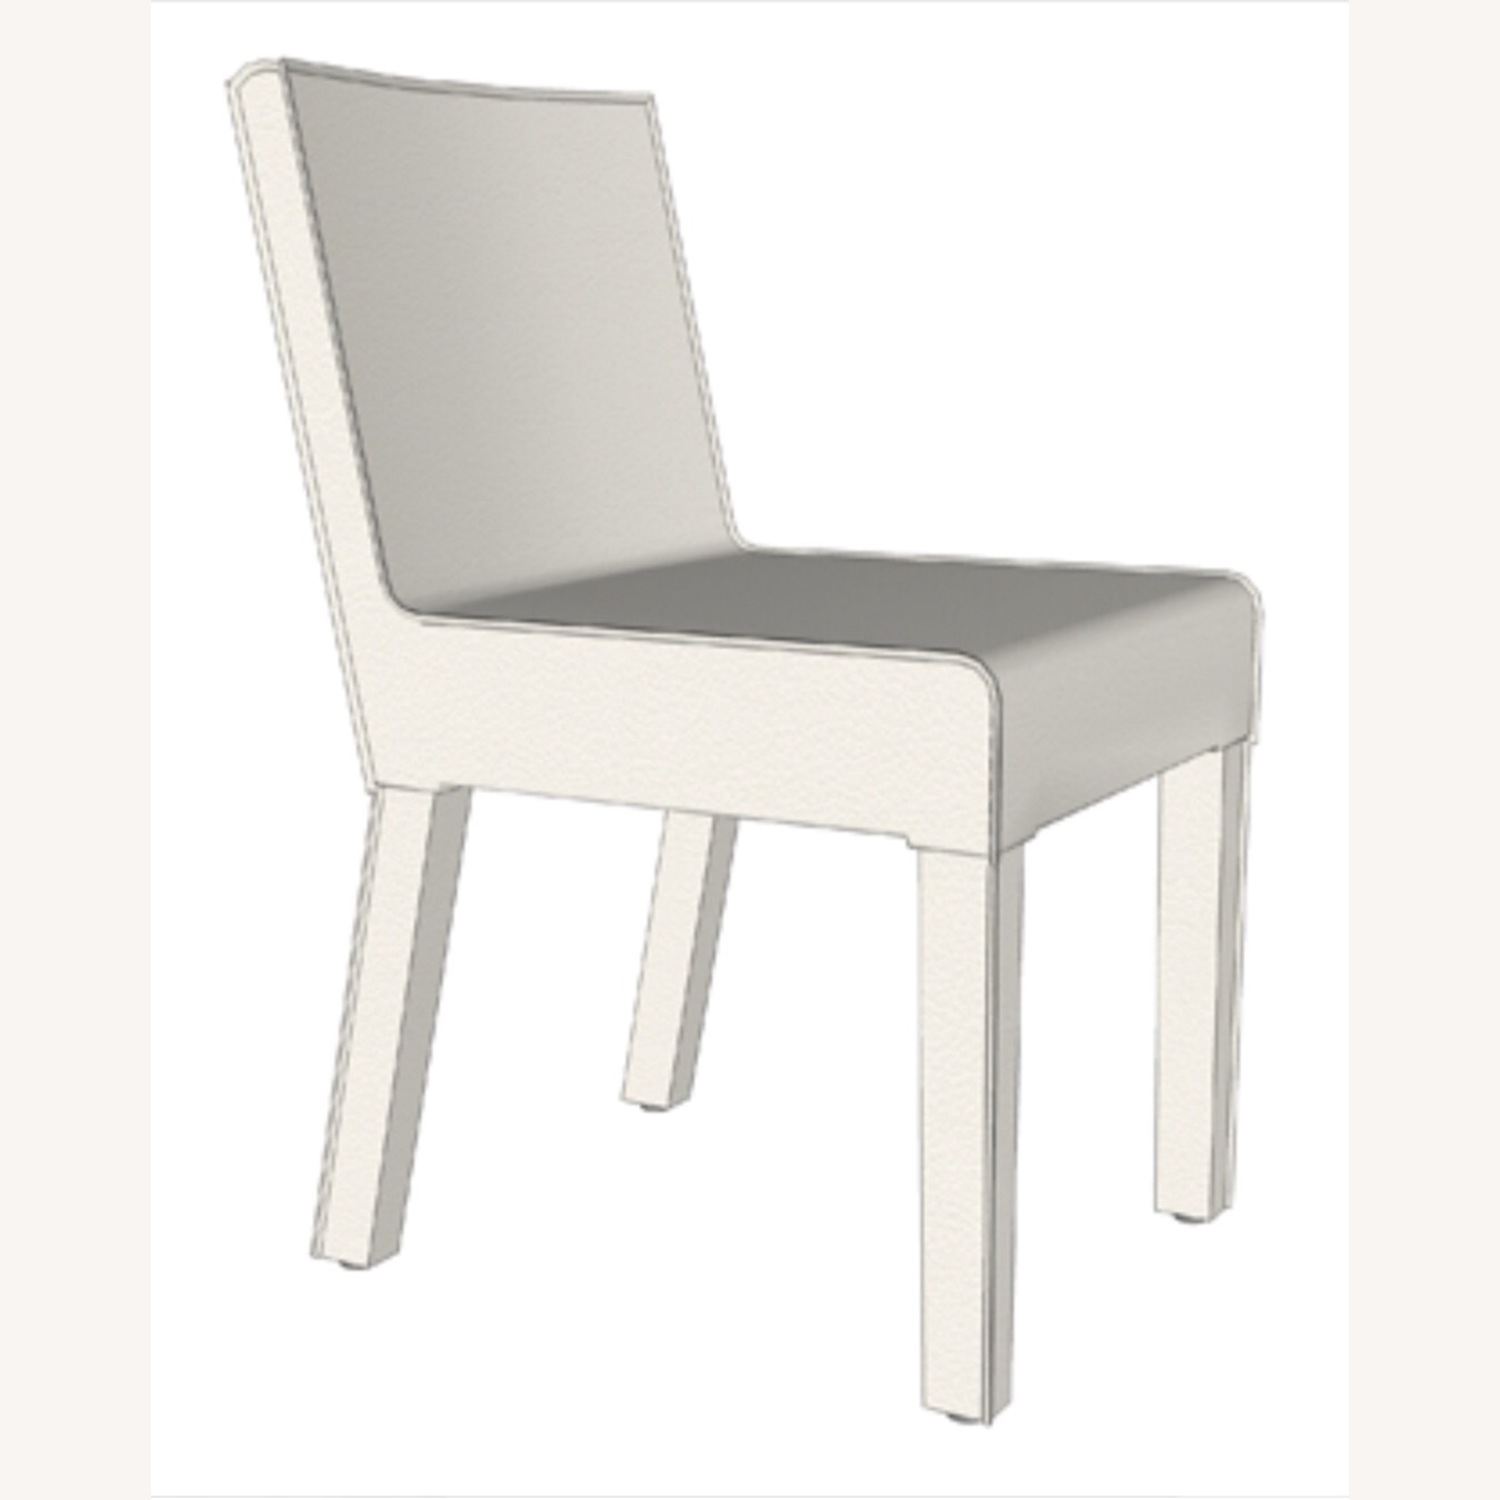 4 Chalk Leather Dining Chairs - image-3